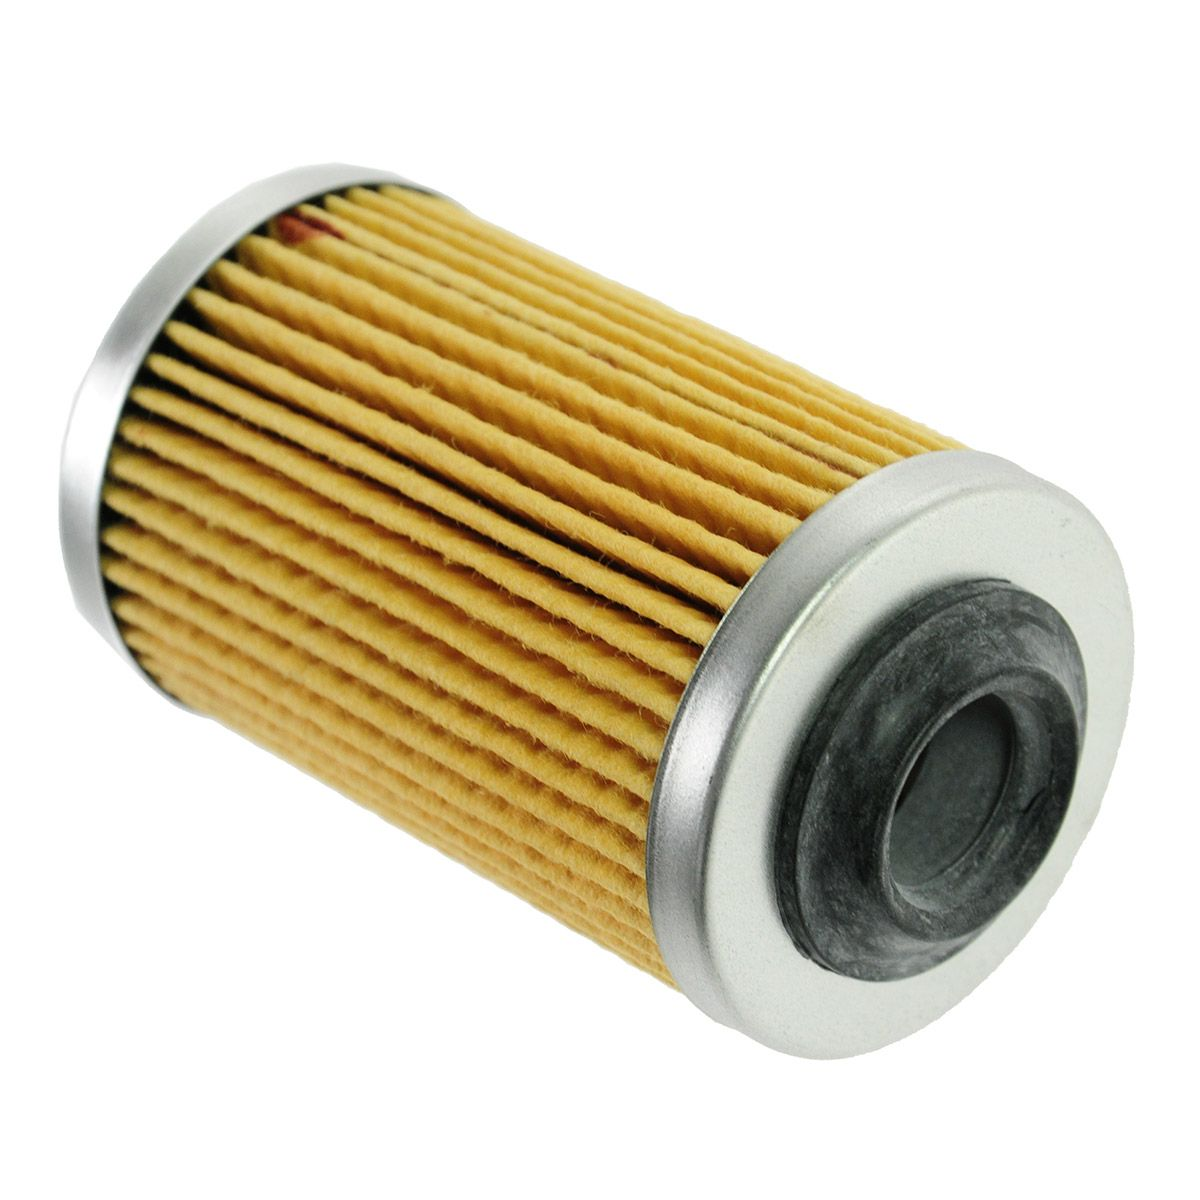 AC DELCO PF2129F Engine Oil Filter For Cadillac Chevy Olds